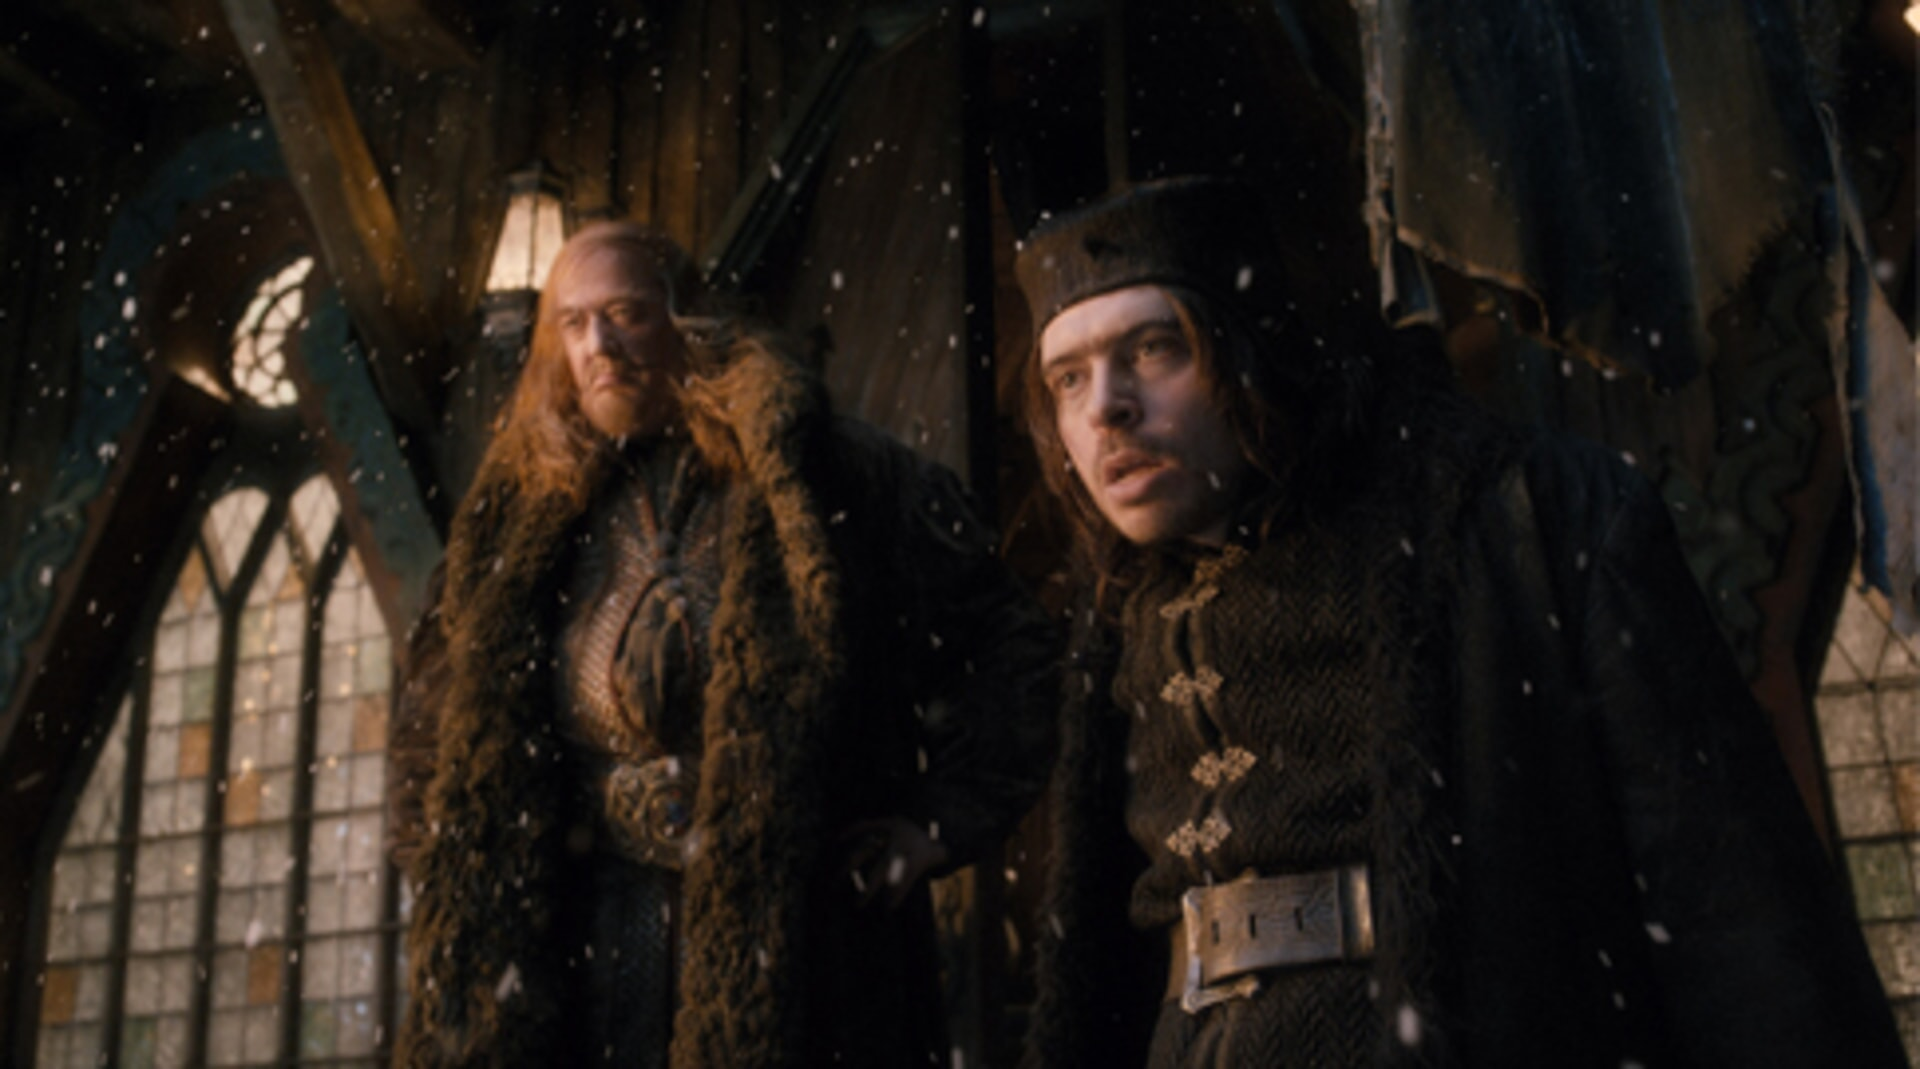 The Hobbit: The Desolation of Smaug - Image 13